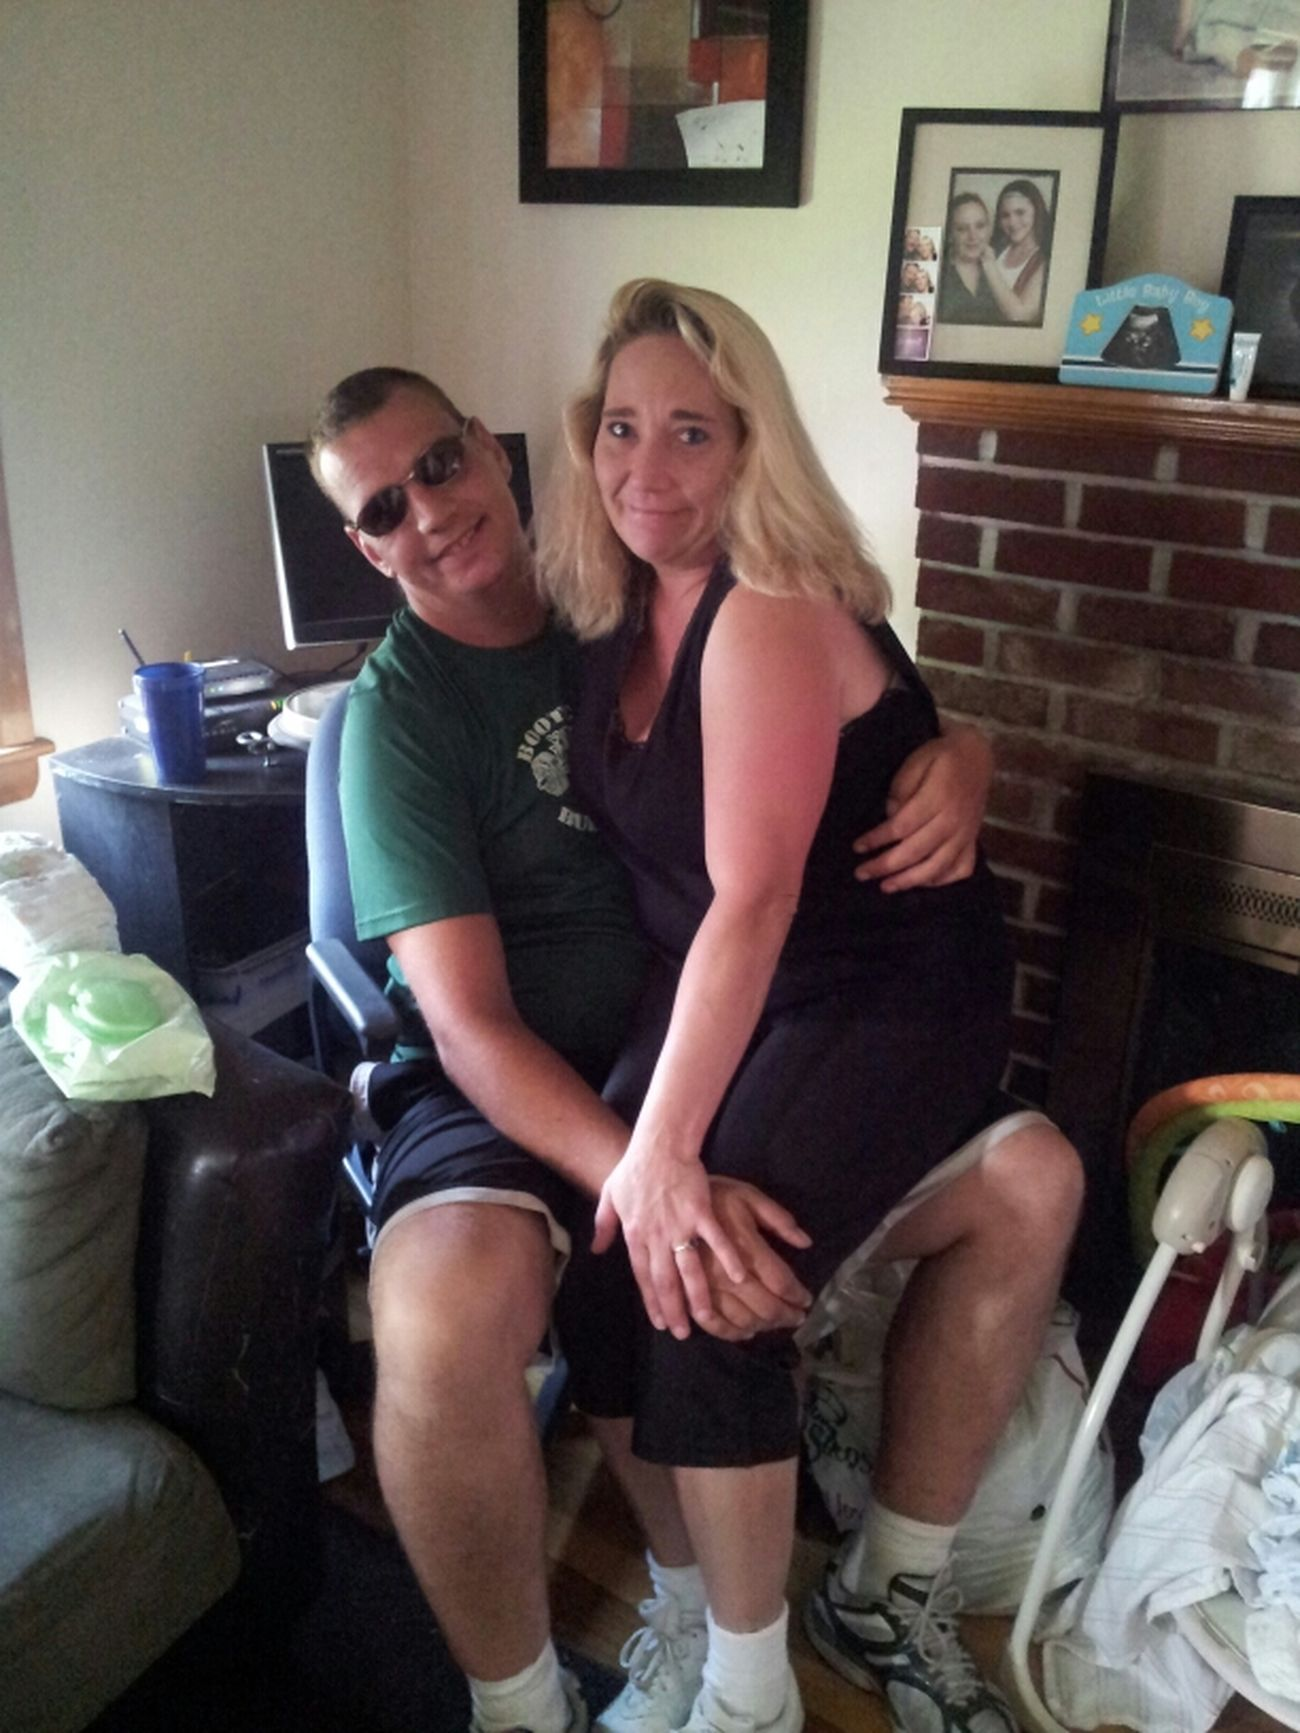 Me & My Boyfriend Rob At My Son's House